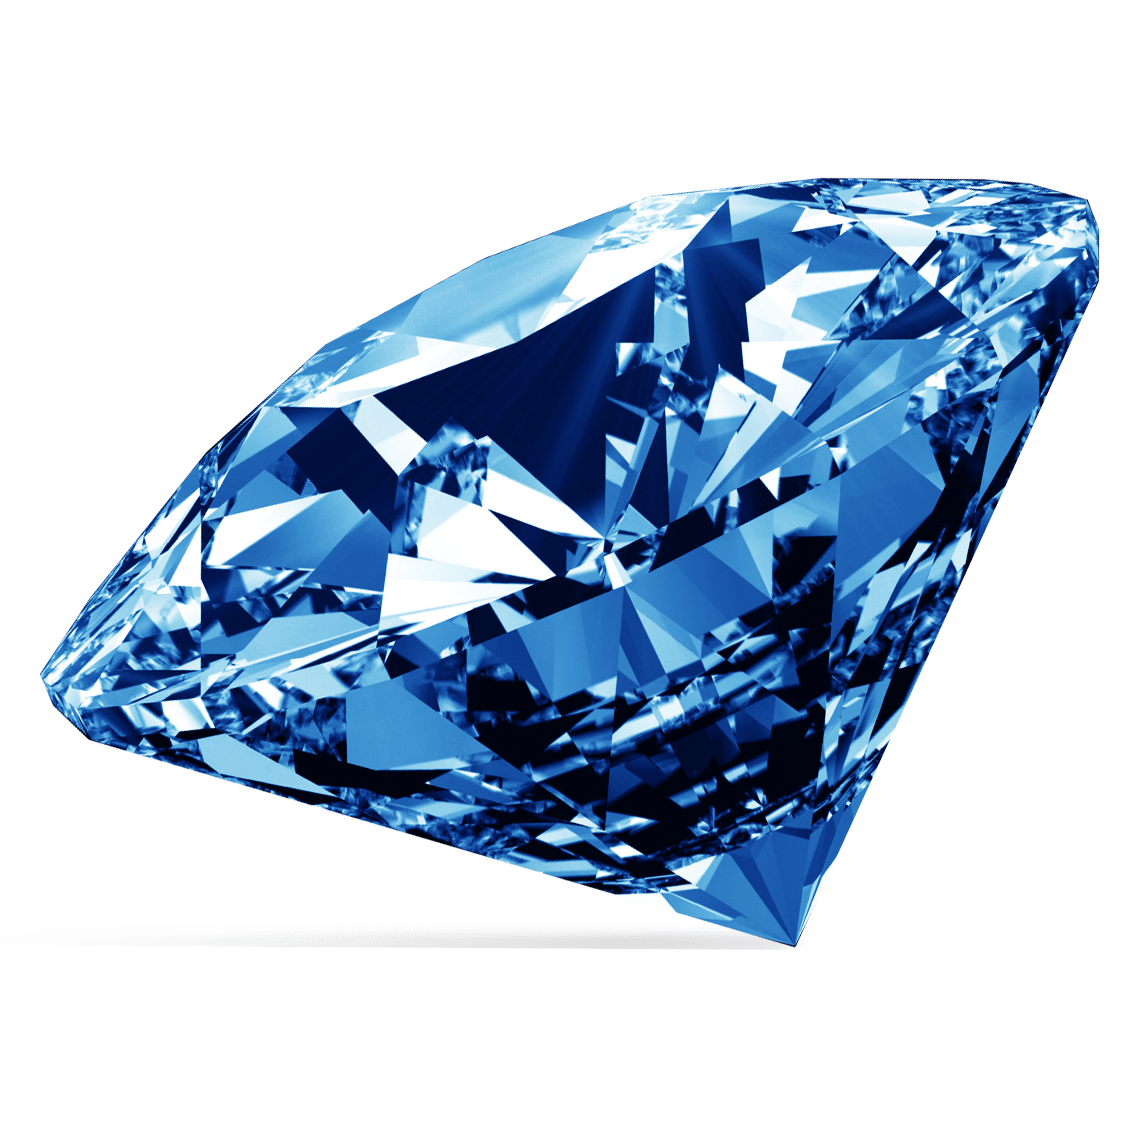 Blue Diamond Png Image PNG Image